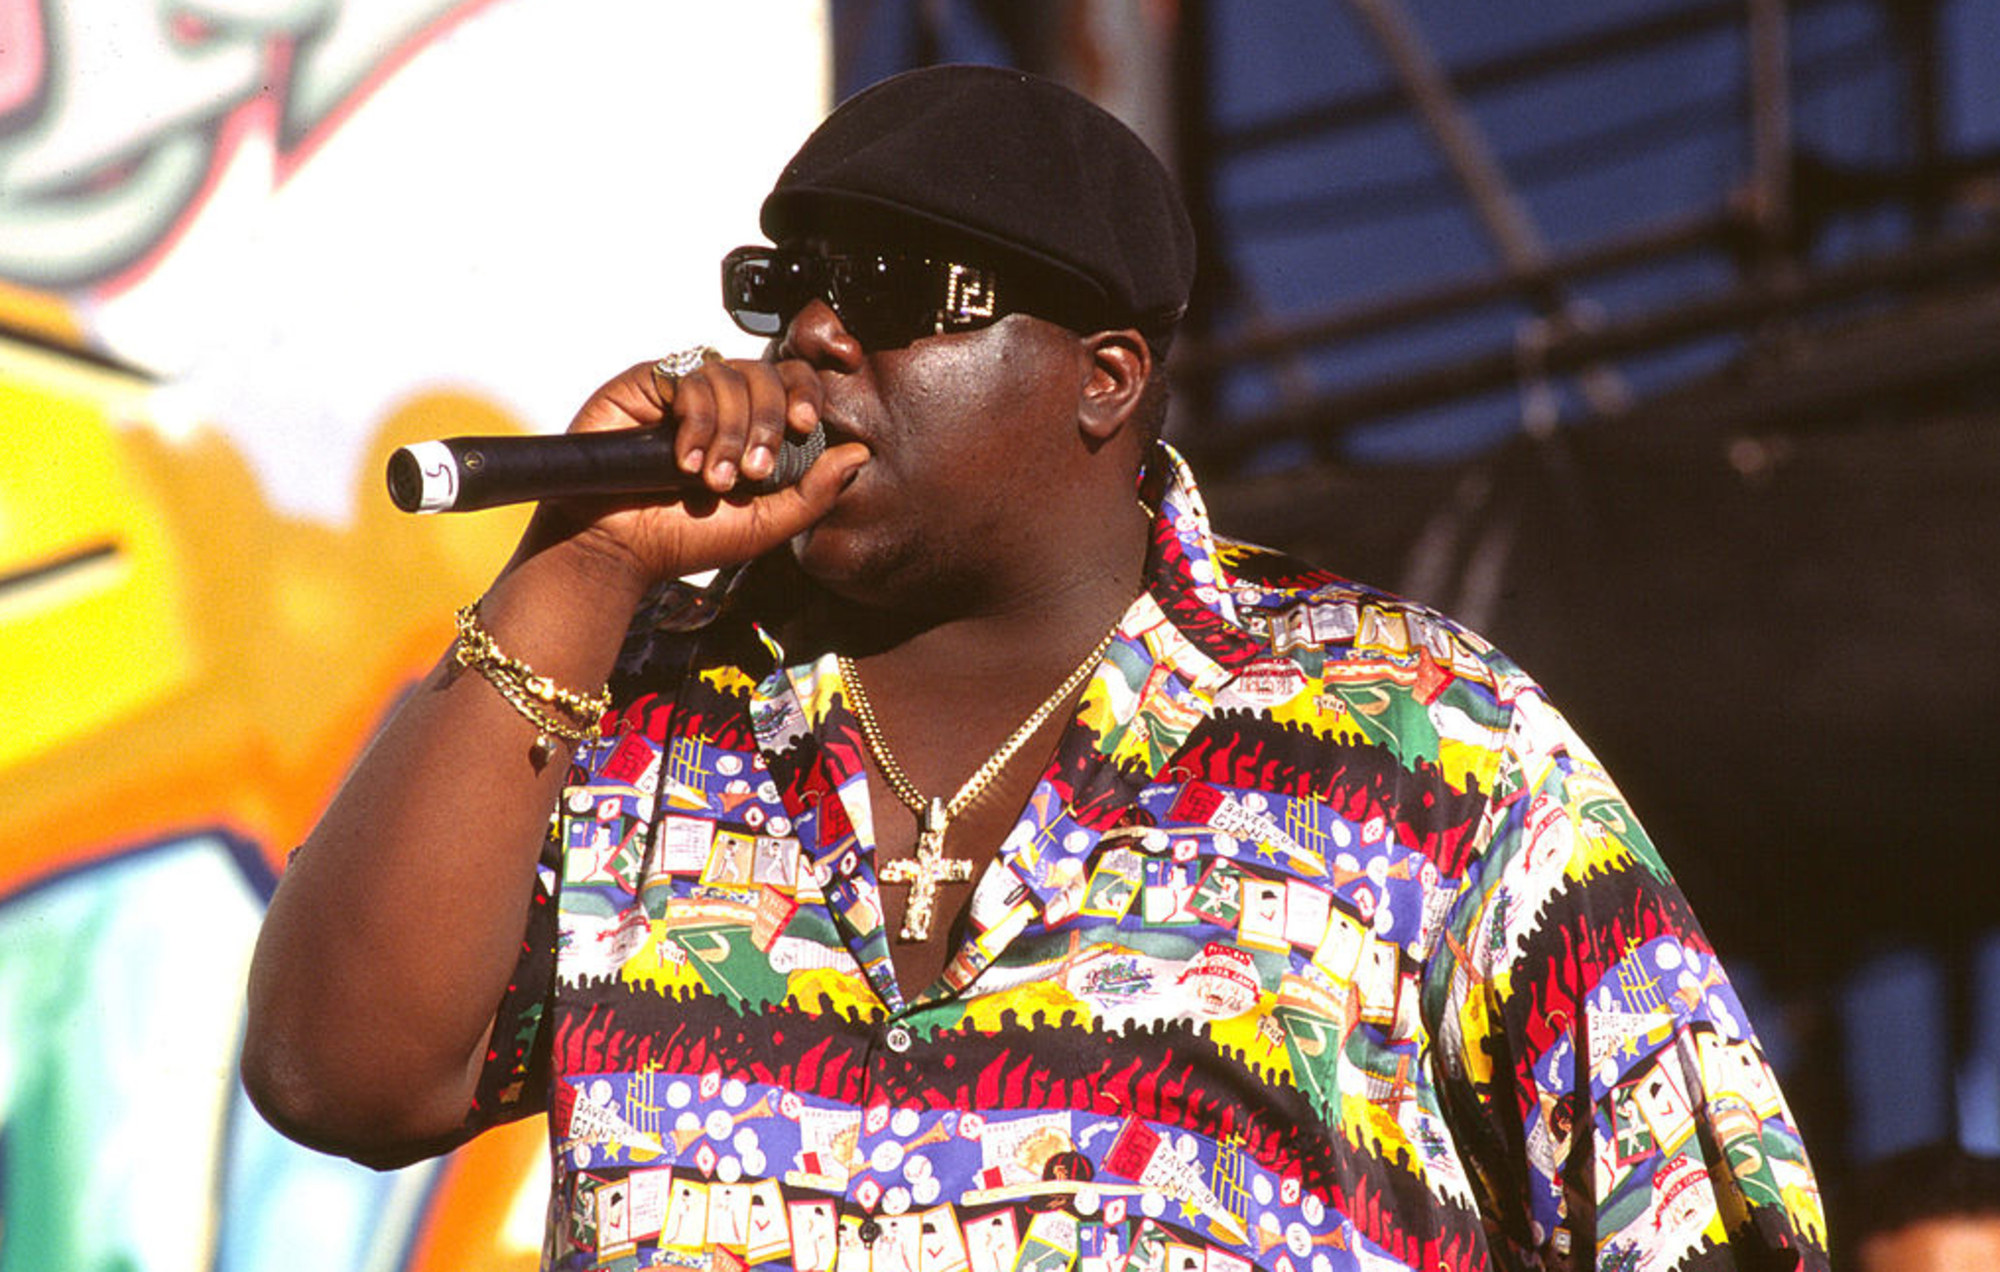 FILA release limited edition shoes to commemorate anniversary of The Notorious B.I.G.'s 'Ready to Die'